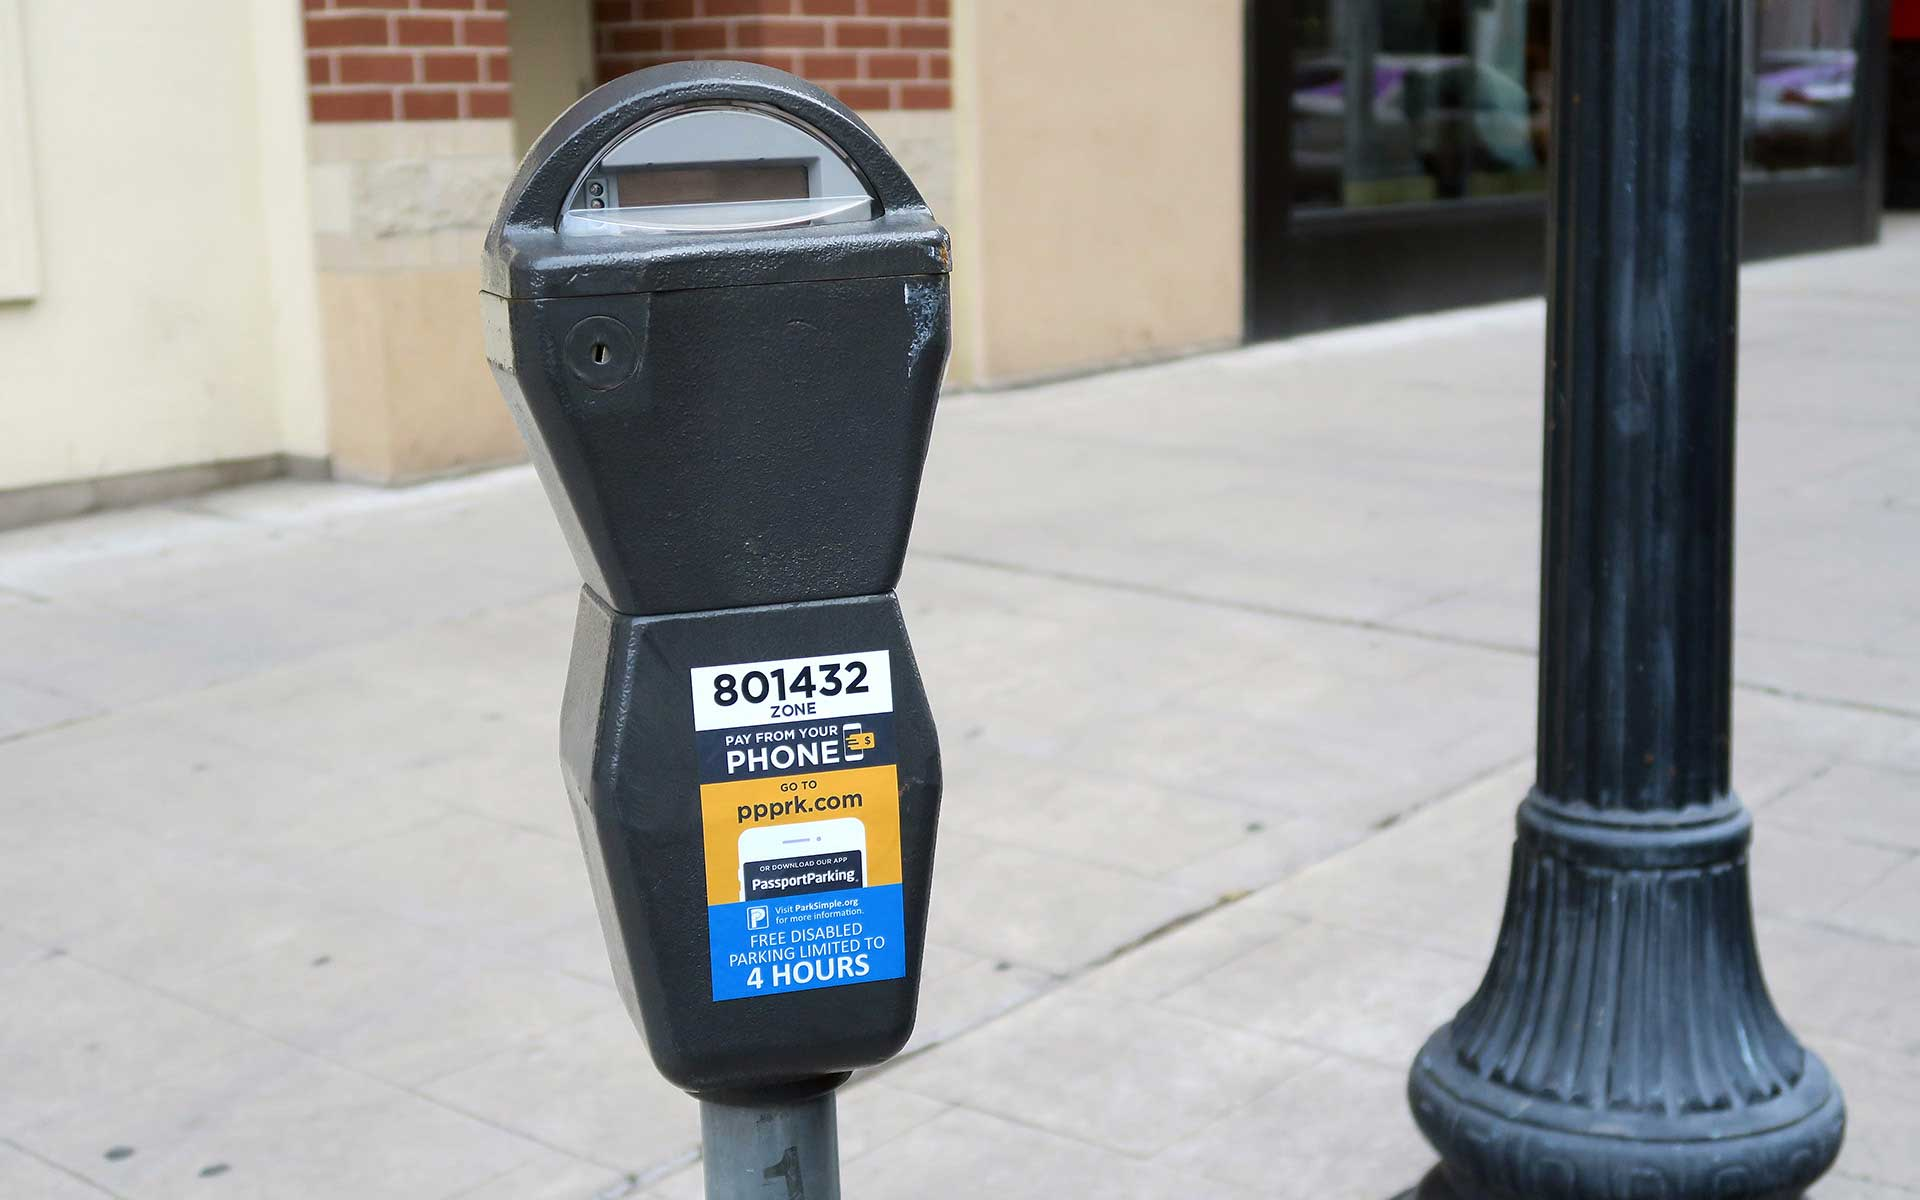 Pay-by-Phone Meter Parking - City of Spokane, Washington